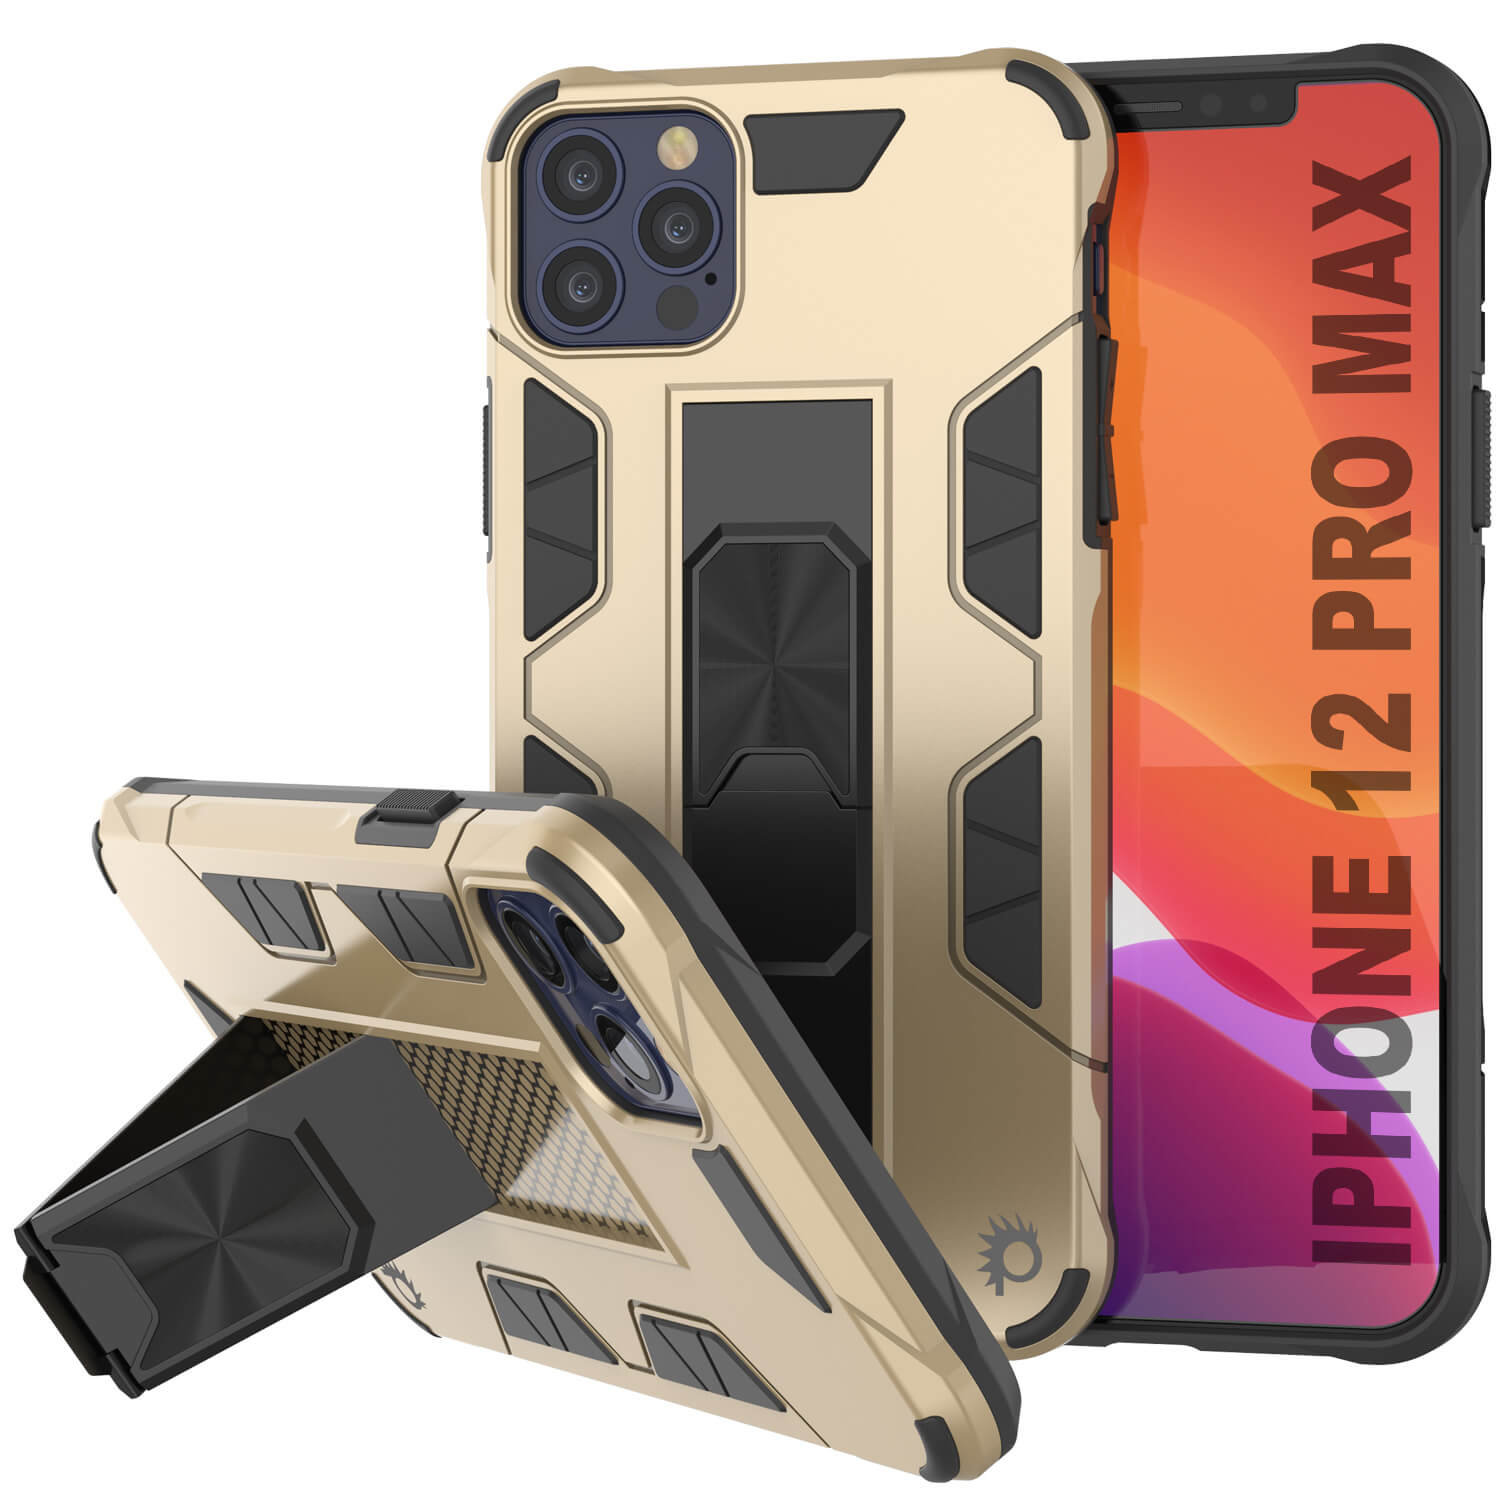 Punkcase iPhone 12 Pro Max Case [ArmorShield Series] Military Style Protective Dual Layer Case Gold